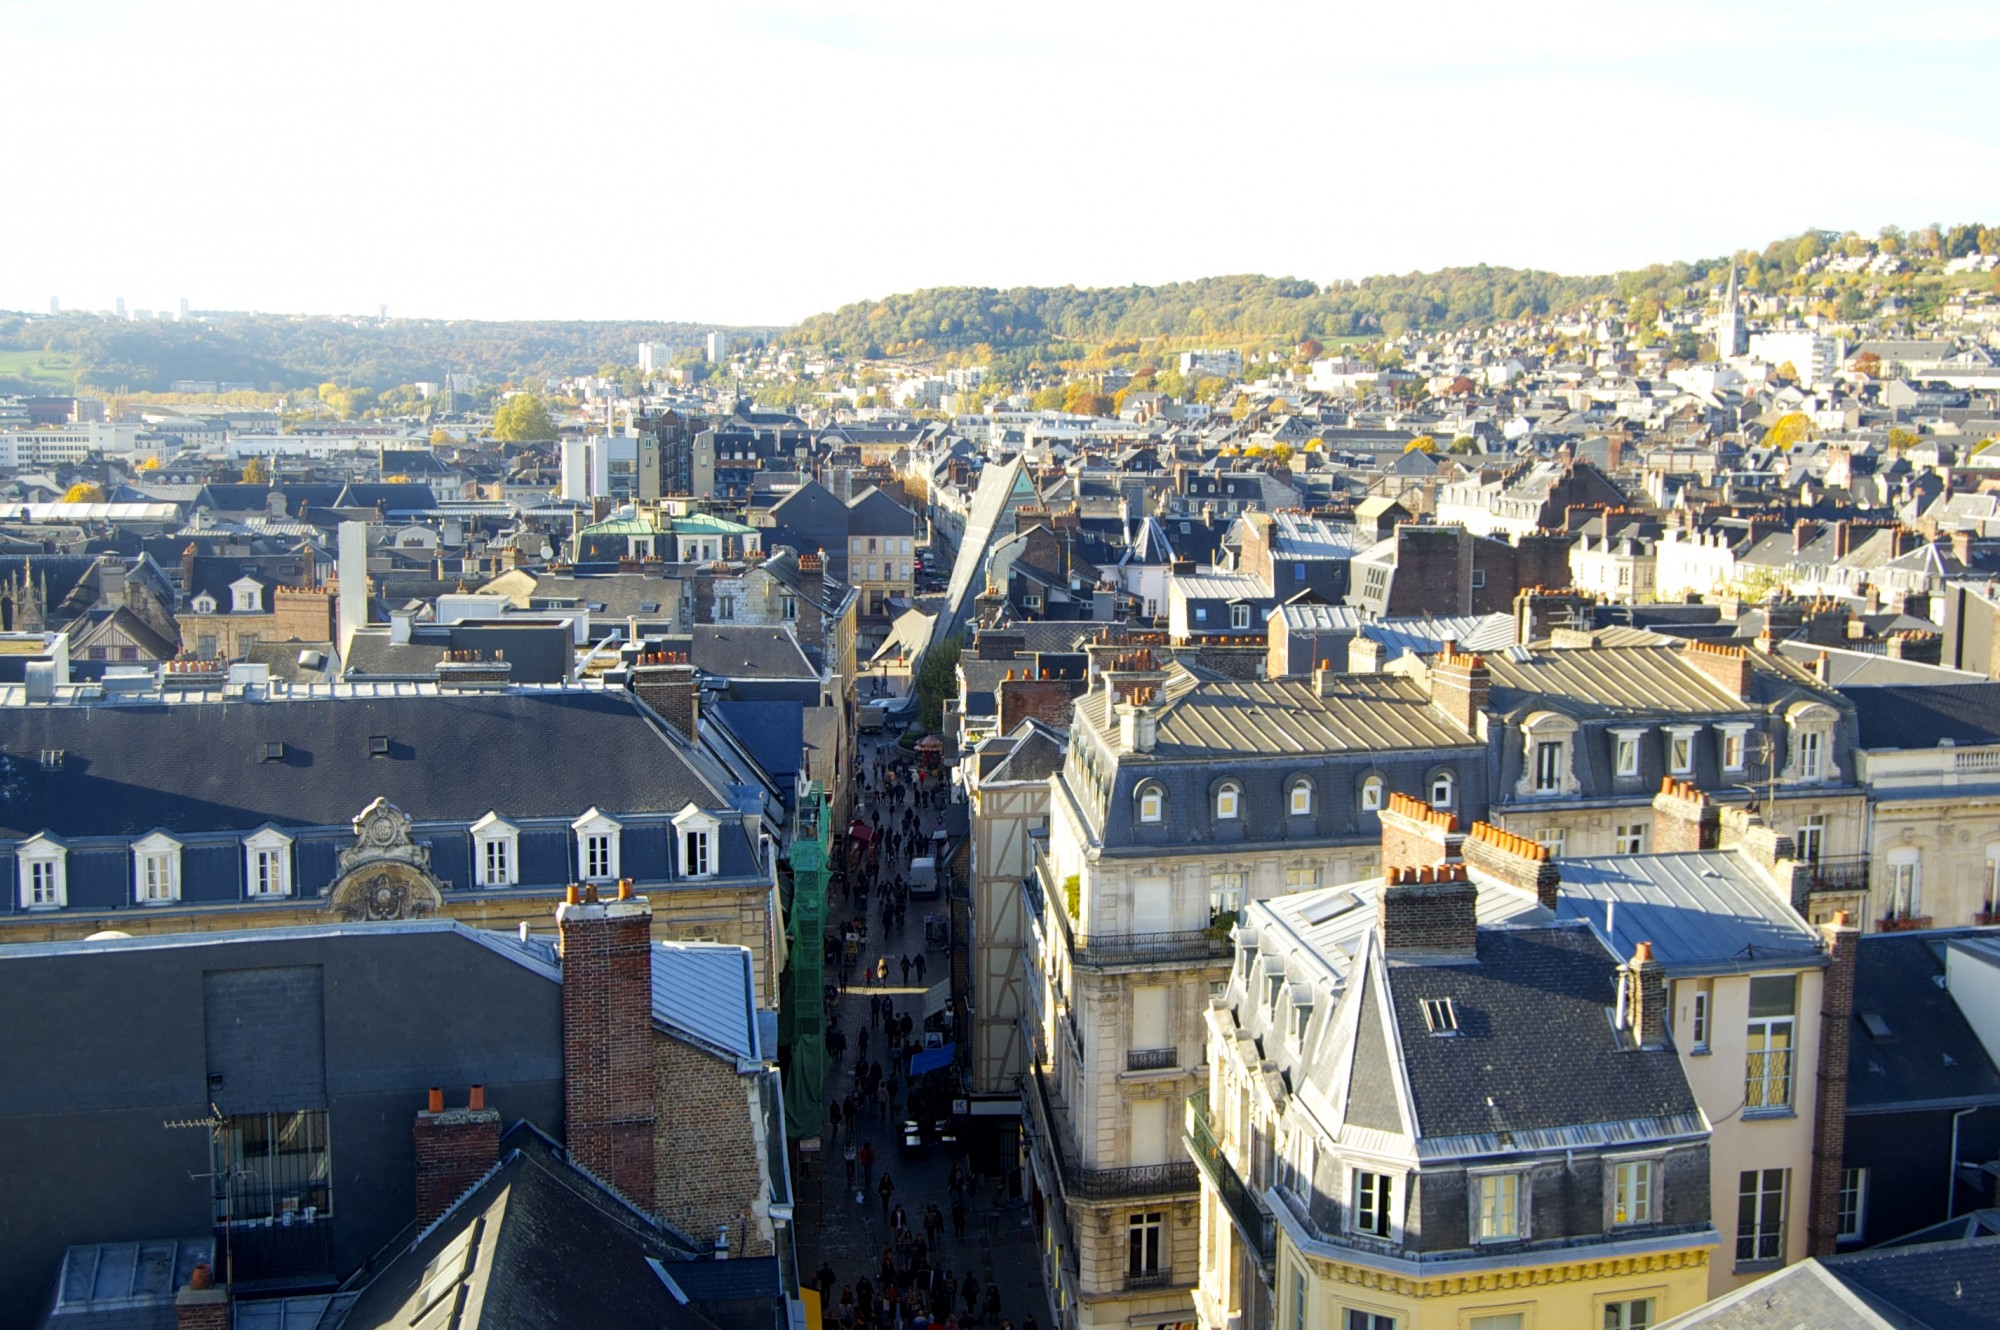 A weekend jaunt through the rustic streets of Rouen.